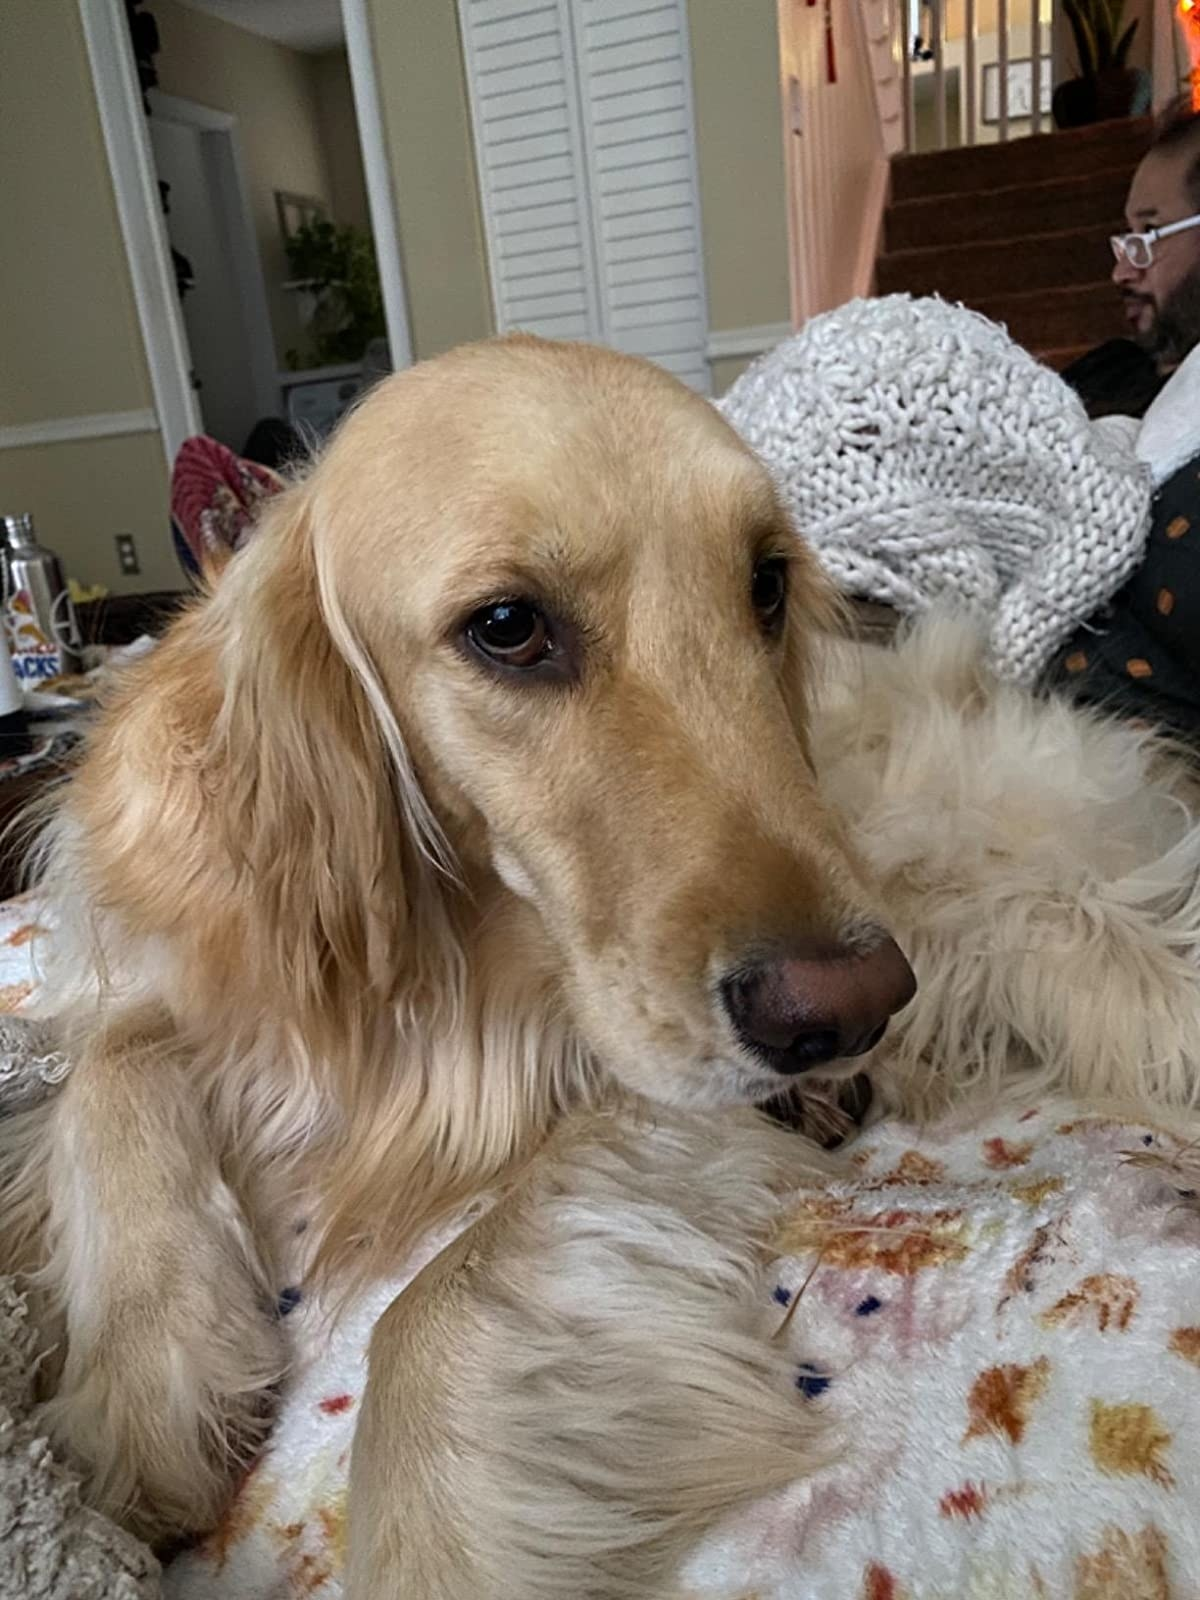 Reviewer photo of their golden retriever looking brushed and smooth